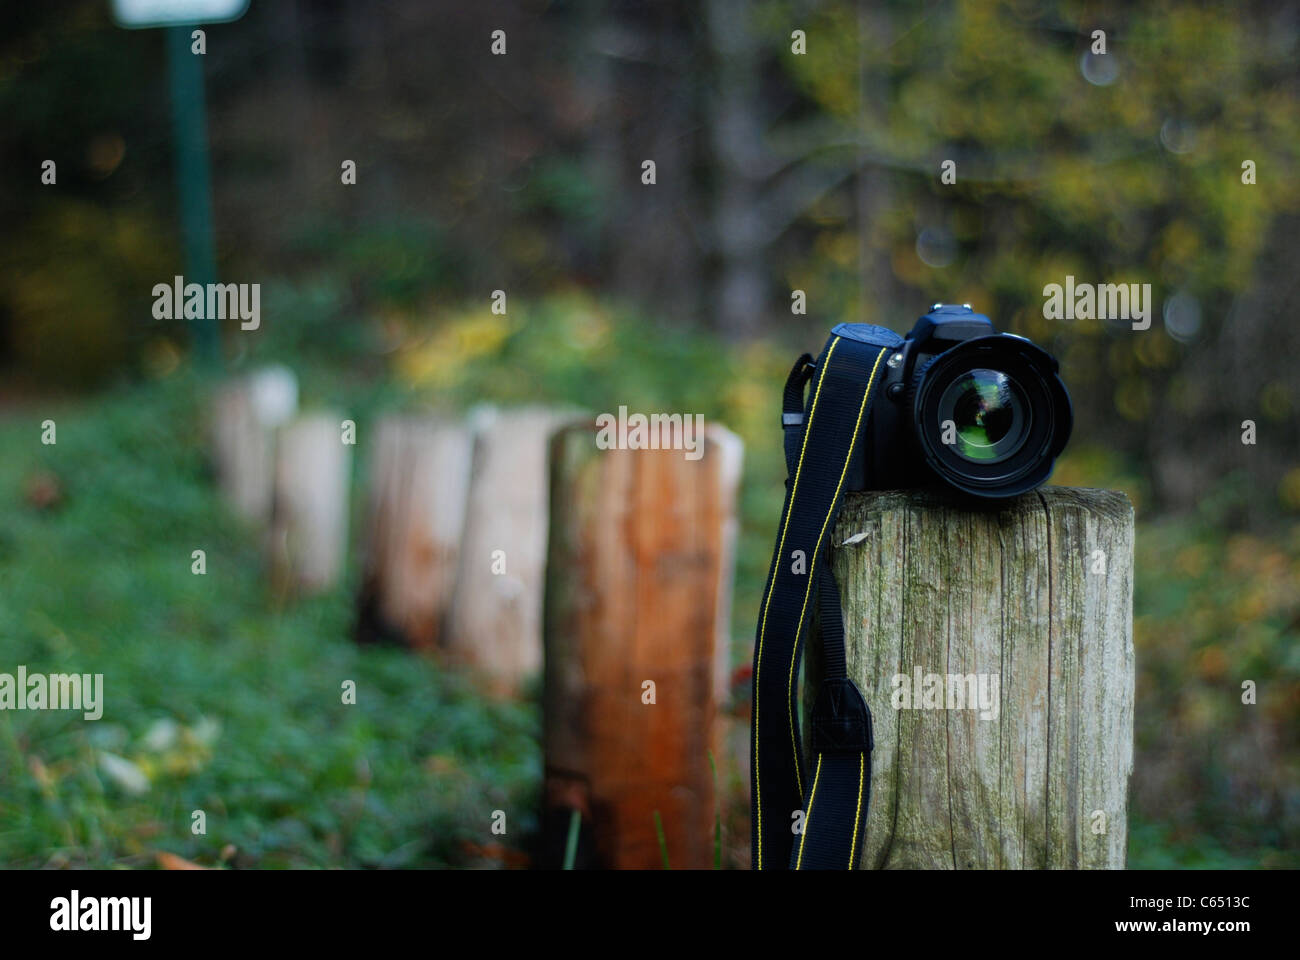 Dslr Camera Background Stock Photos Dslr Camera Background Stock